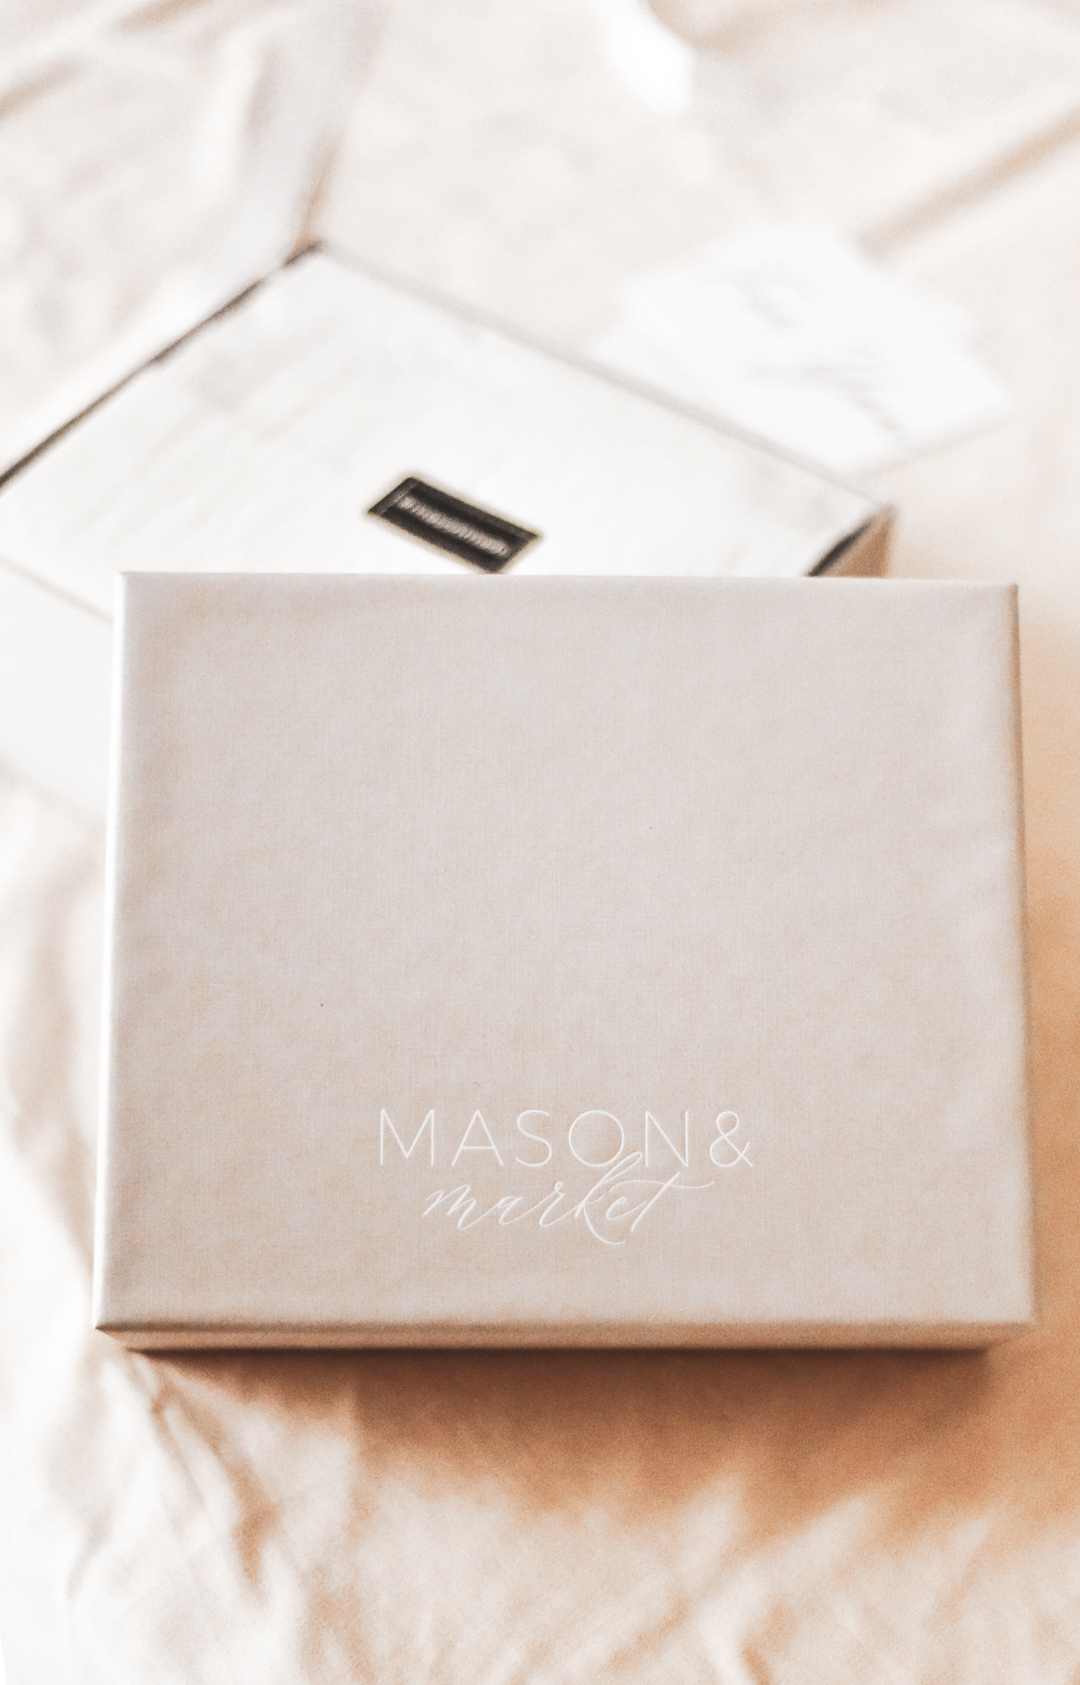 mason-and-market-gift-box-ideas 2